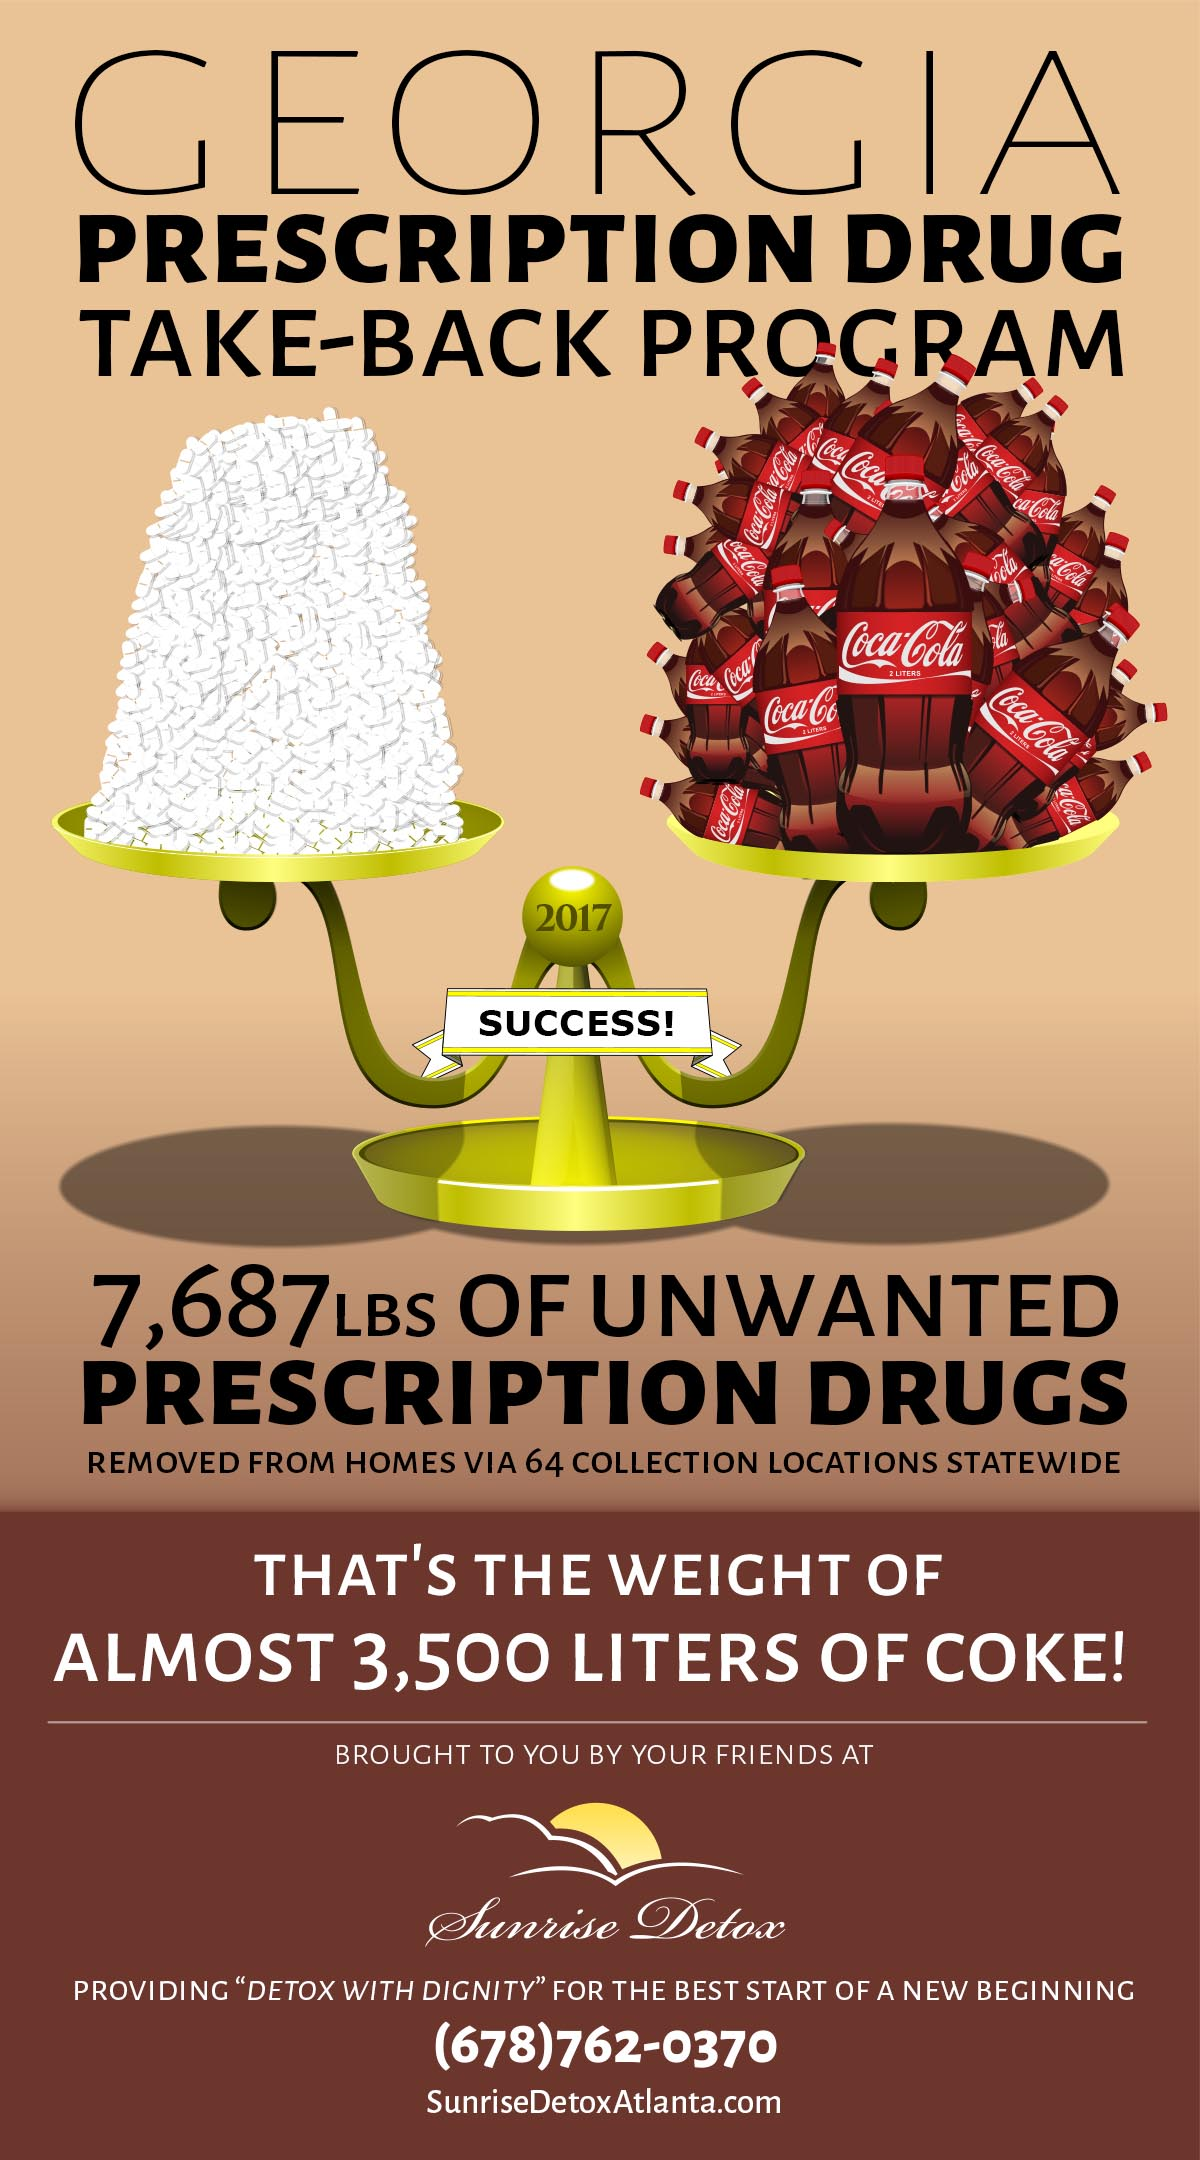 Sunrise is proud to announce that the 2017 Prescription Drug Take-Back Day removed over 3.5 tons of unwanted medication from Georgia homes!